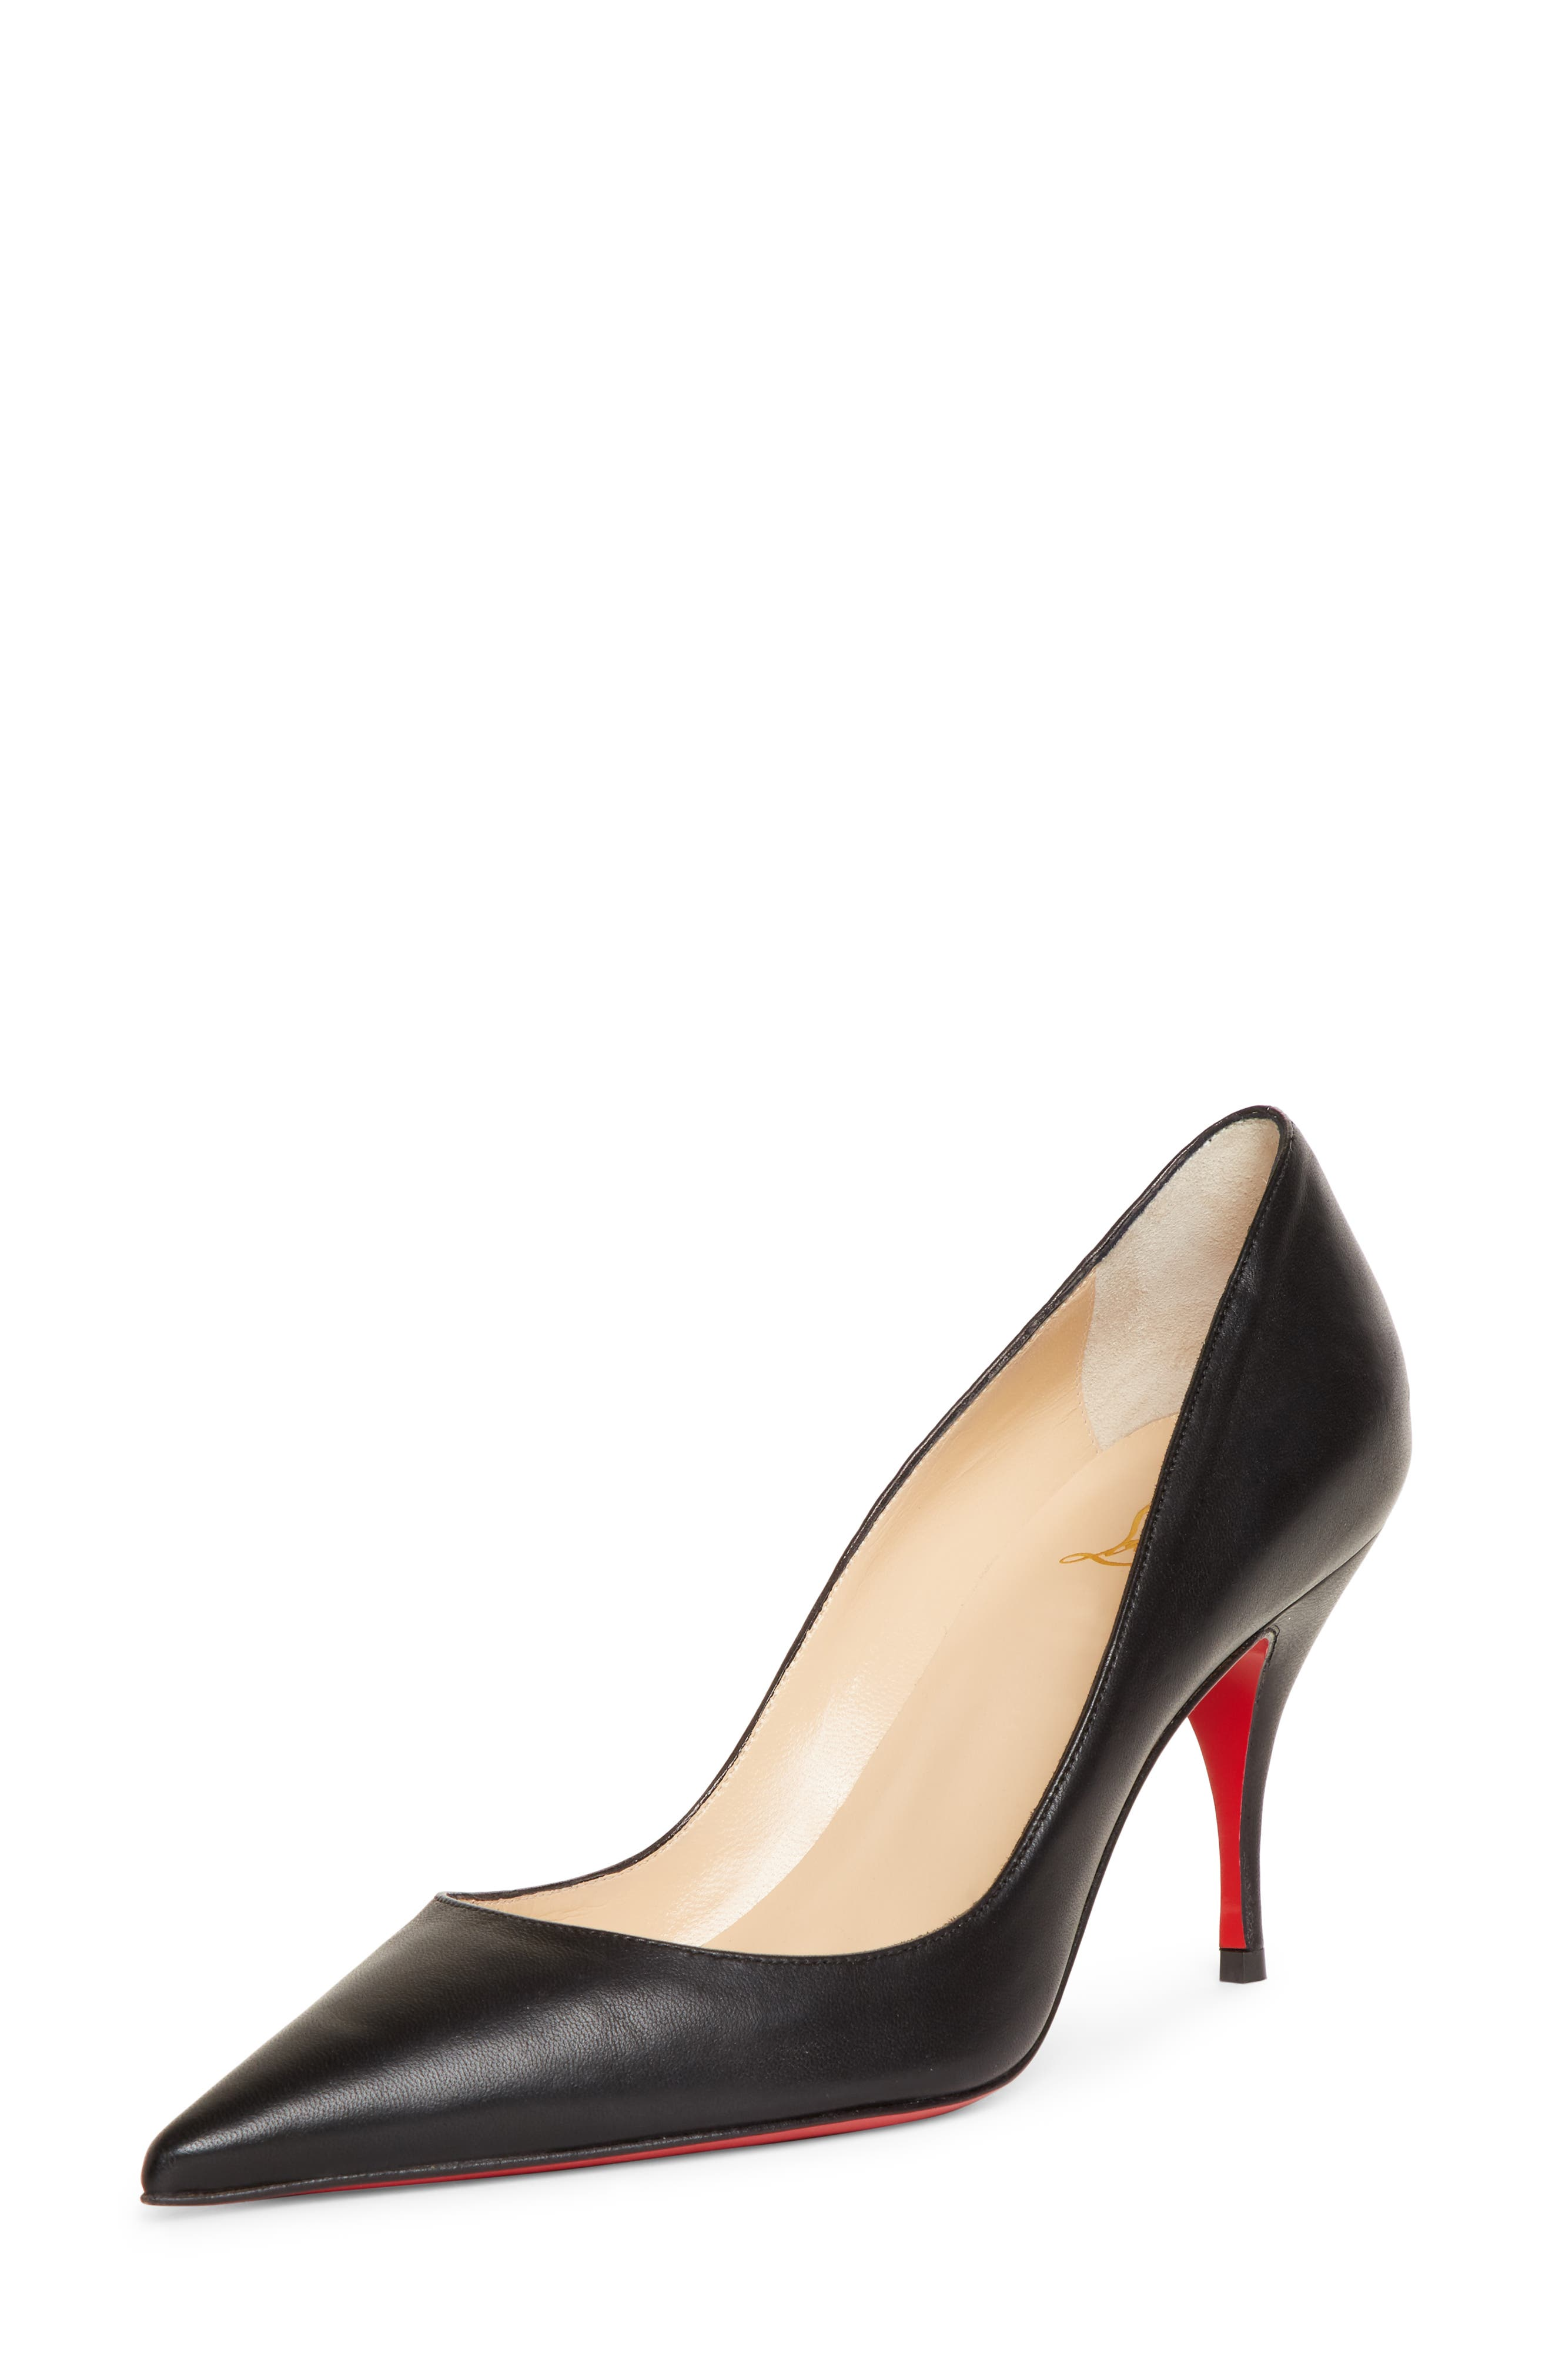 Christian Louboutin Clare Pointy Toe Pump, Black